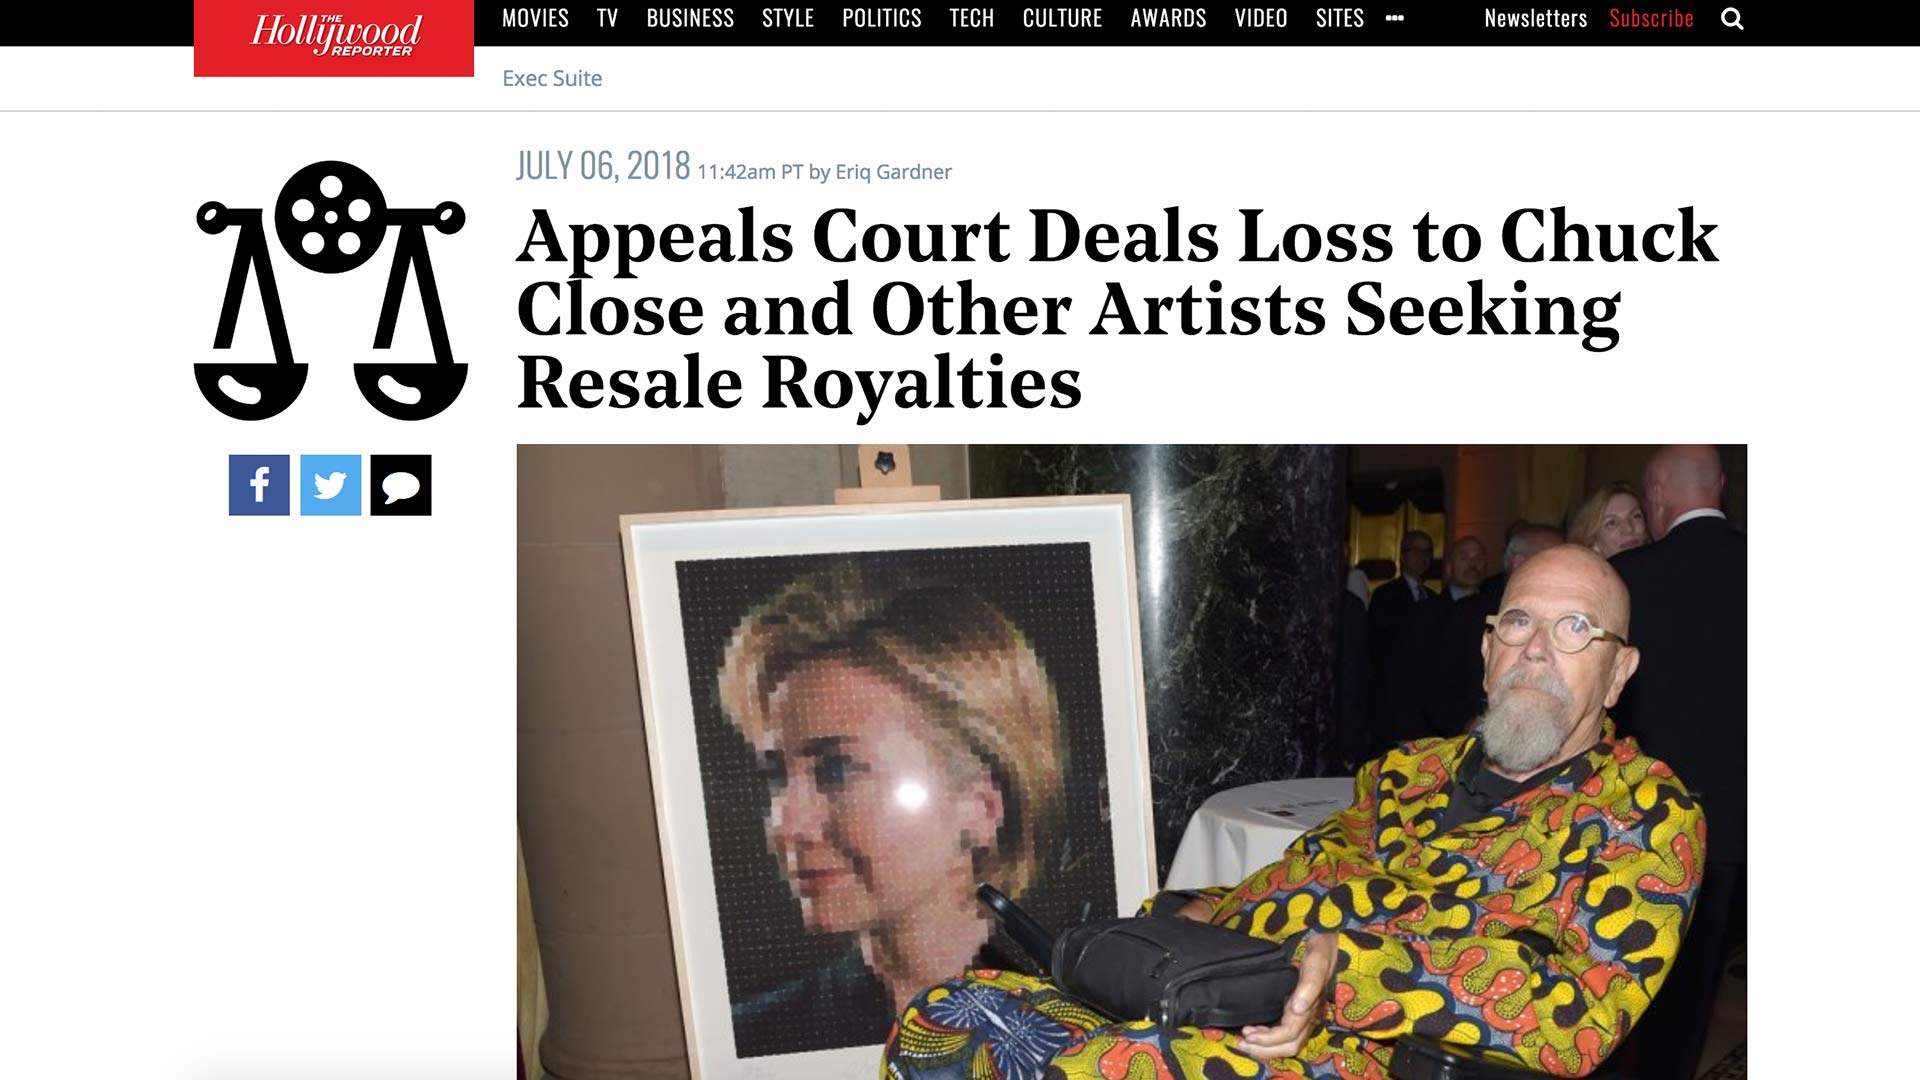 Fairness Rocks News Appeals Court Deals Loss to Chuck Close and Other Artists Seeking Resale Royalties